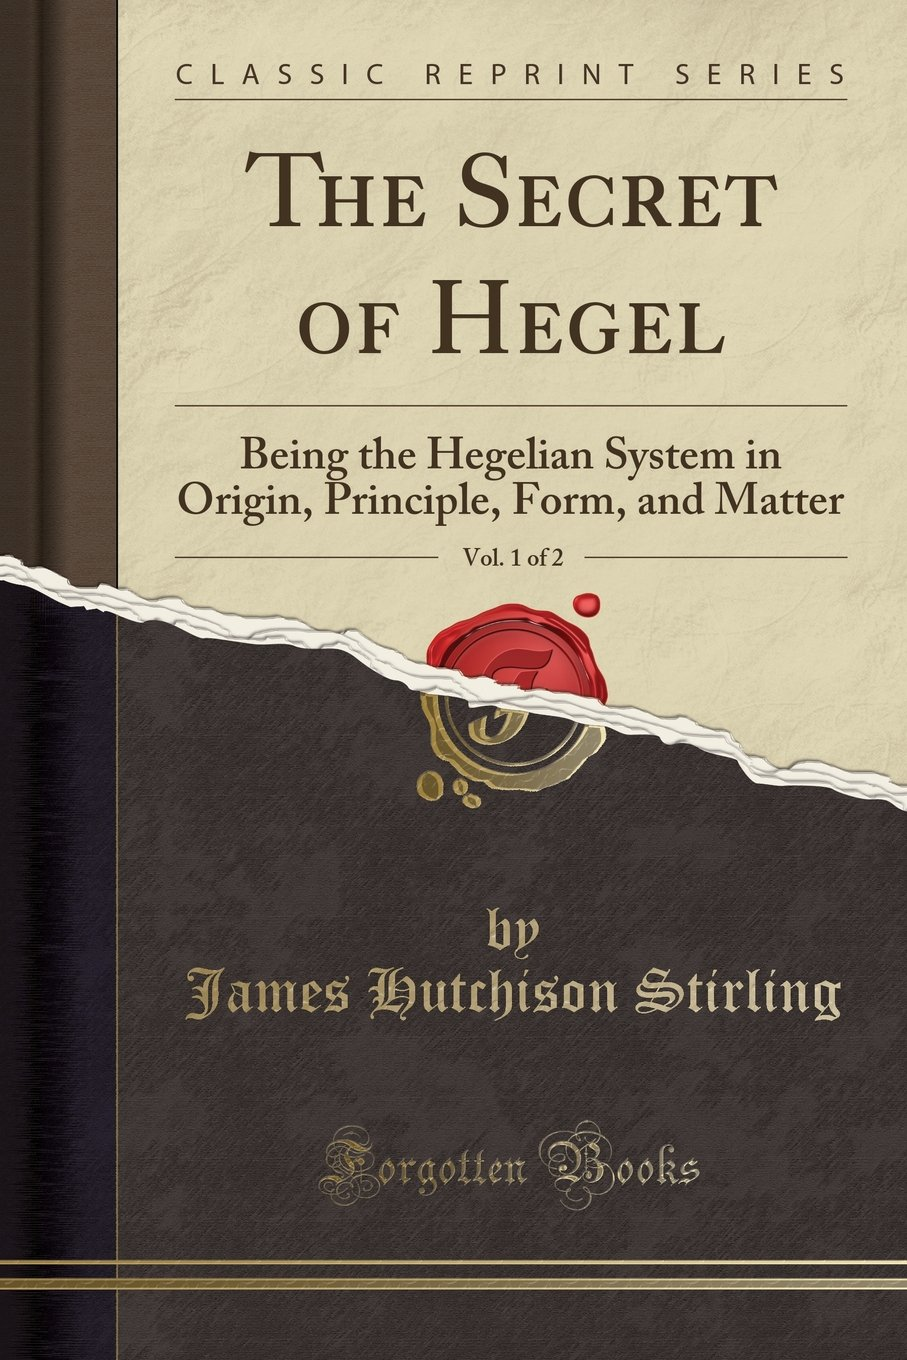 The Secret of Hegel, Vol. 1 of 2: Being the Hegelian System in Origin, Principle, Form, and Matter (Classic Reprint) pdf